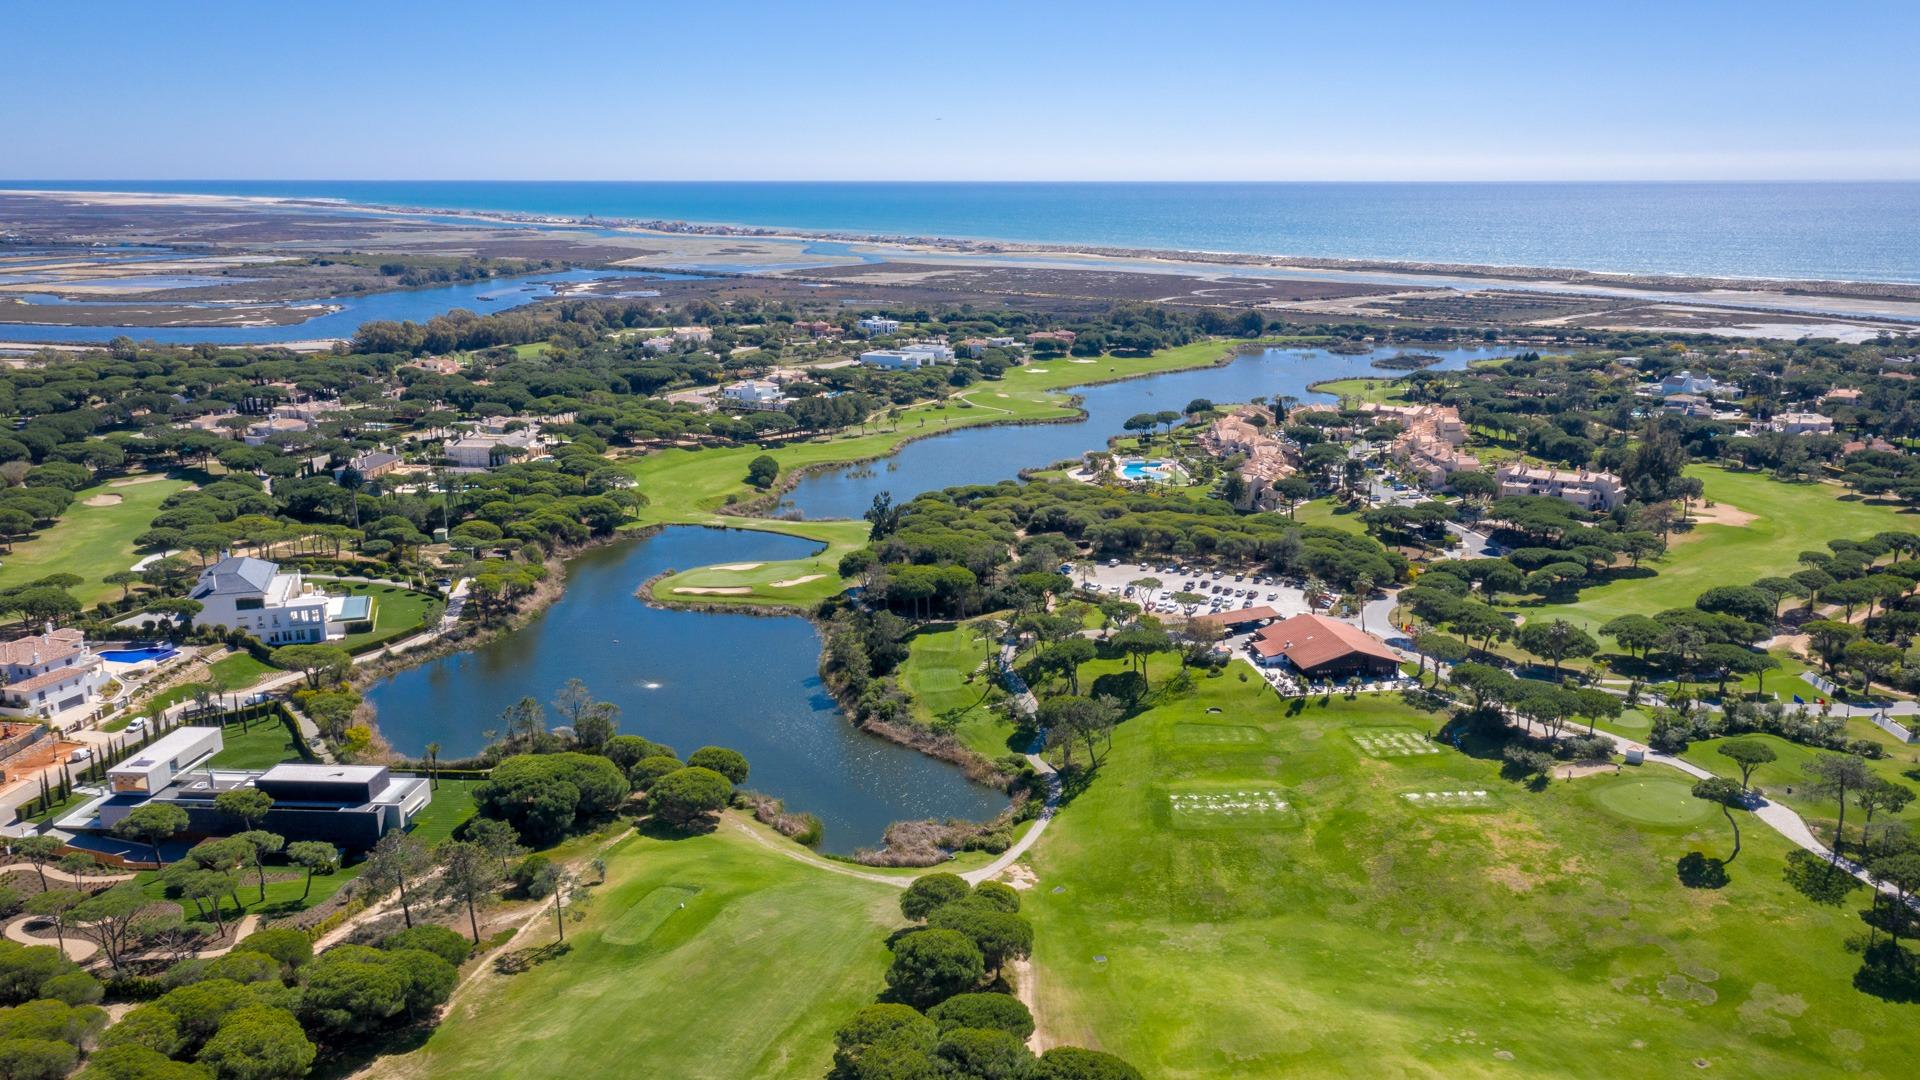 Quinta do lago view